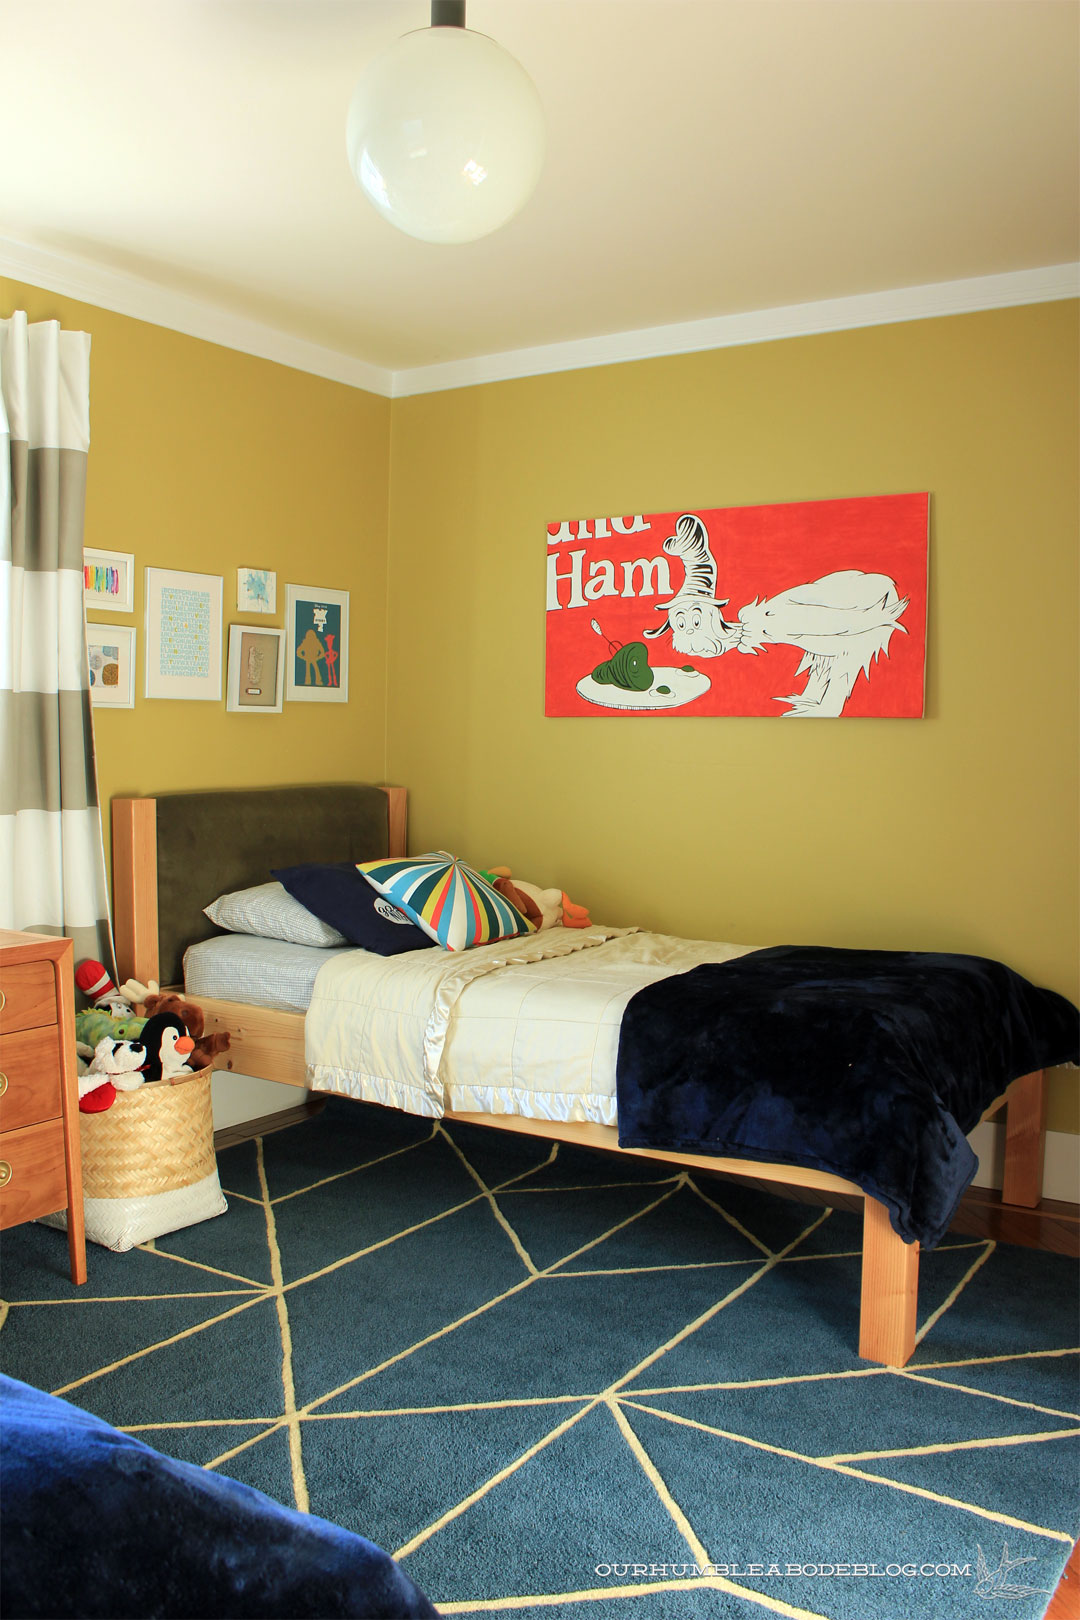 Boys Bedroom With Large Rug From Closet